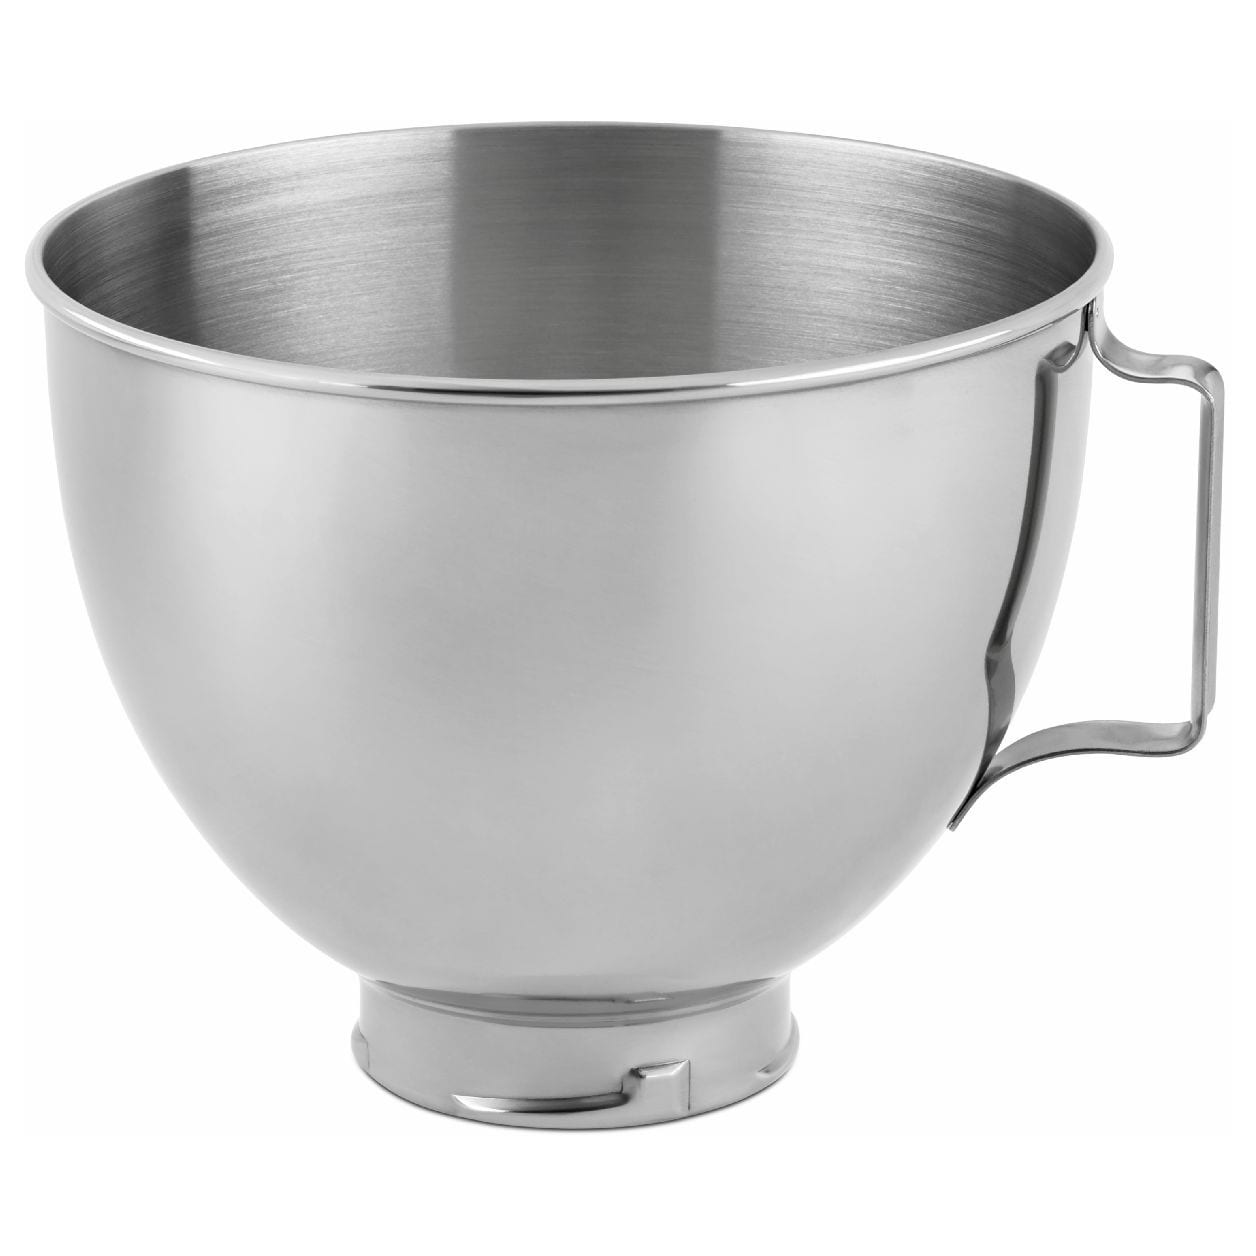 KitchenAid K45SBWH Stainless Steel (Silver) 4.5-quart Mix...